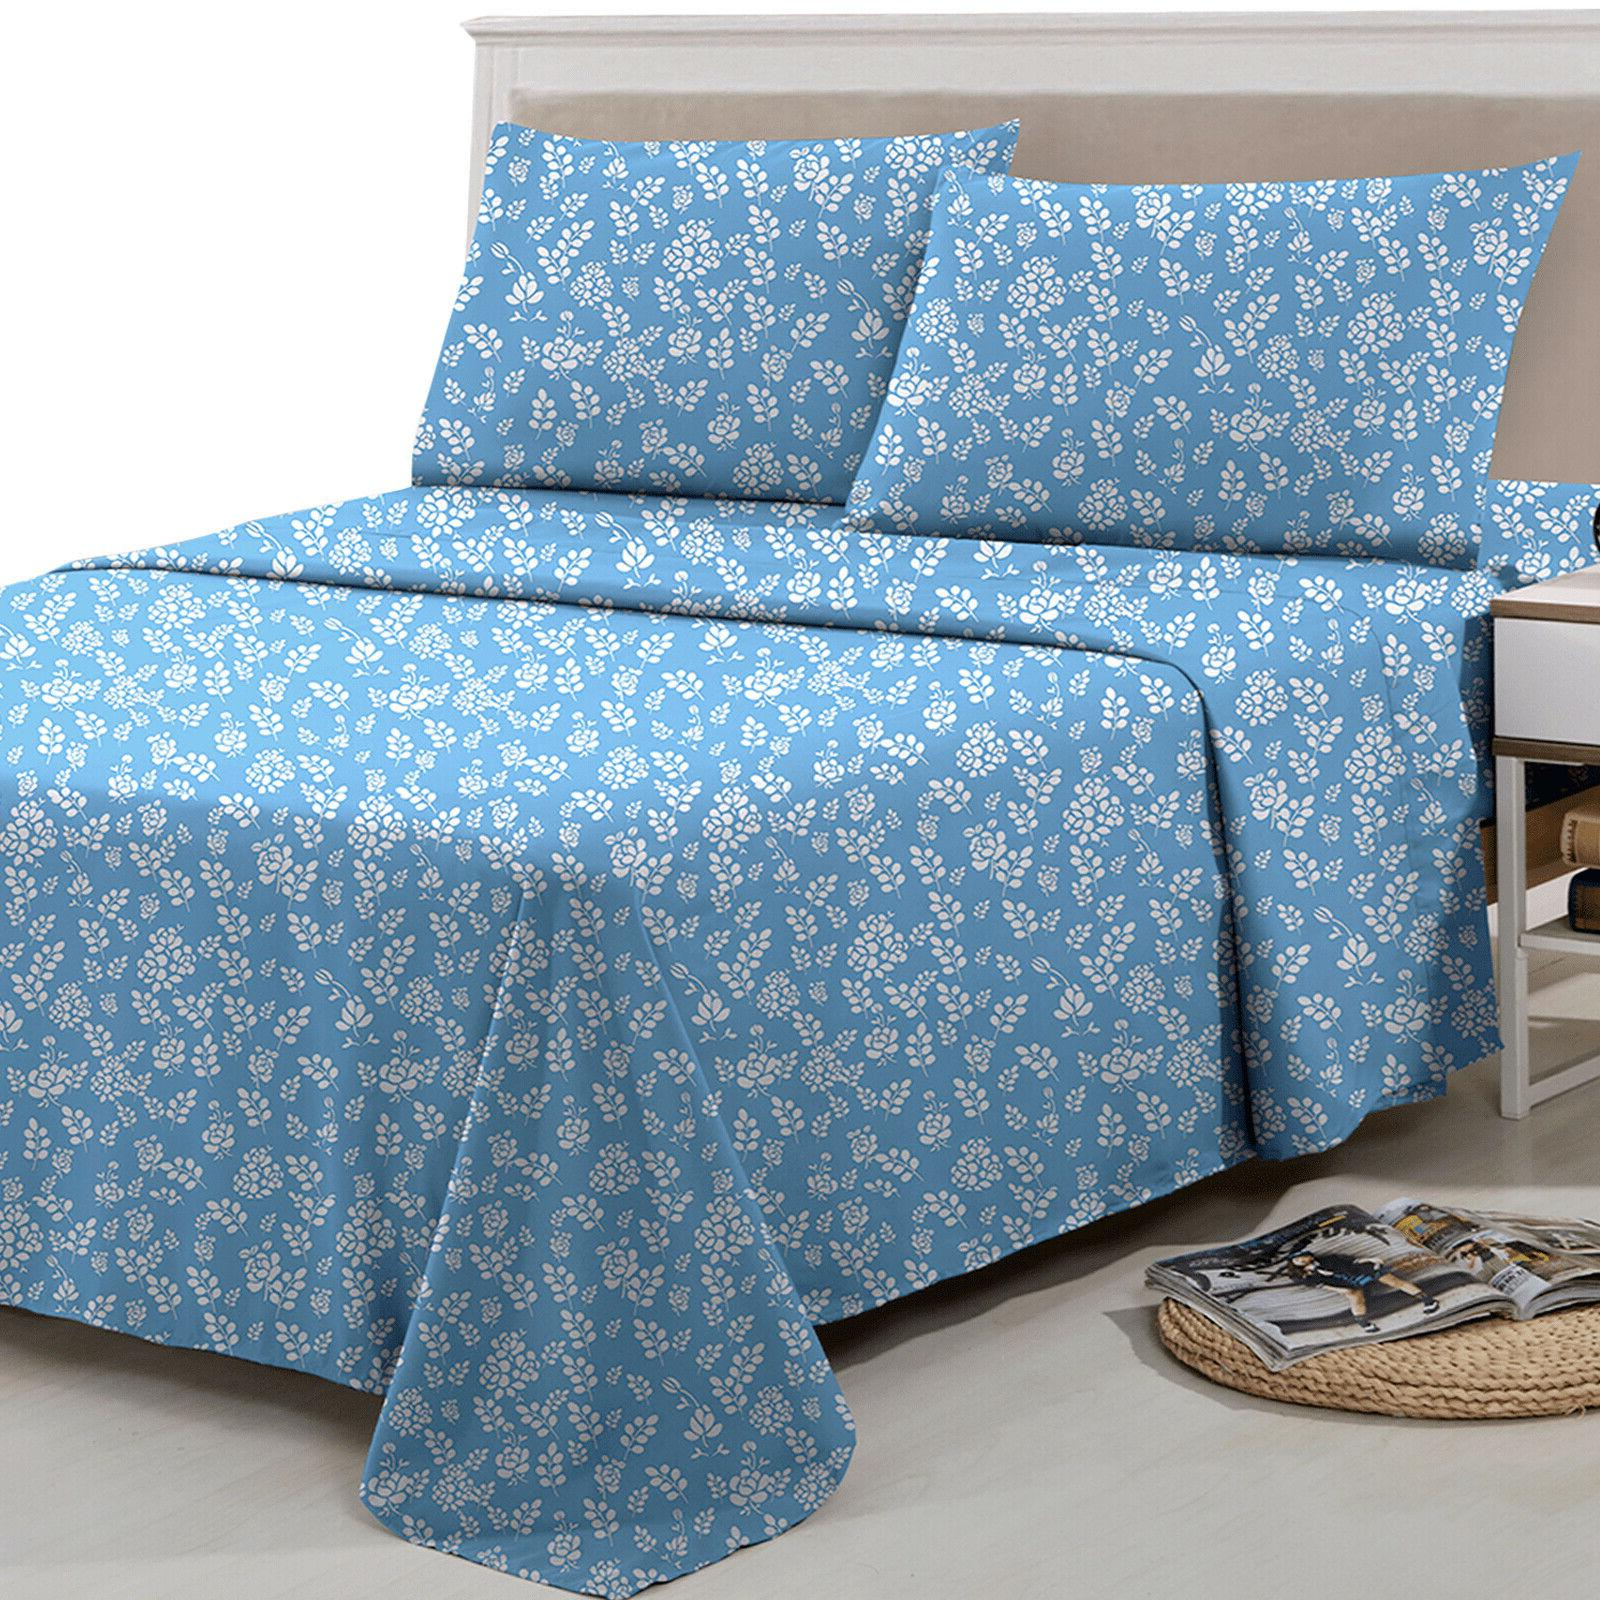 egyptian comfort 1800 count floral 4 piece